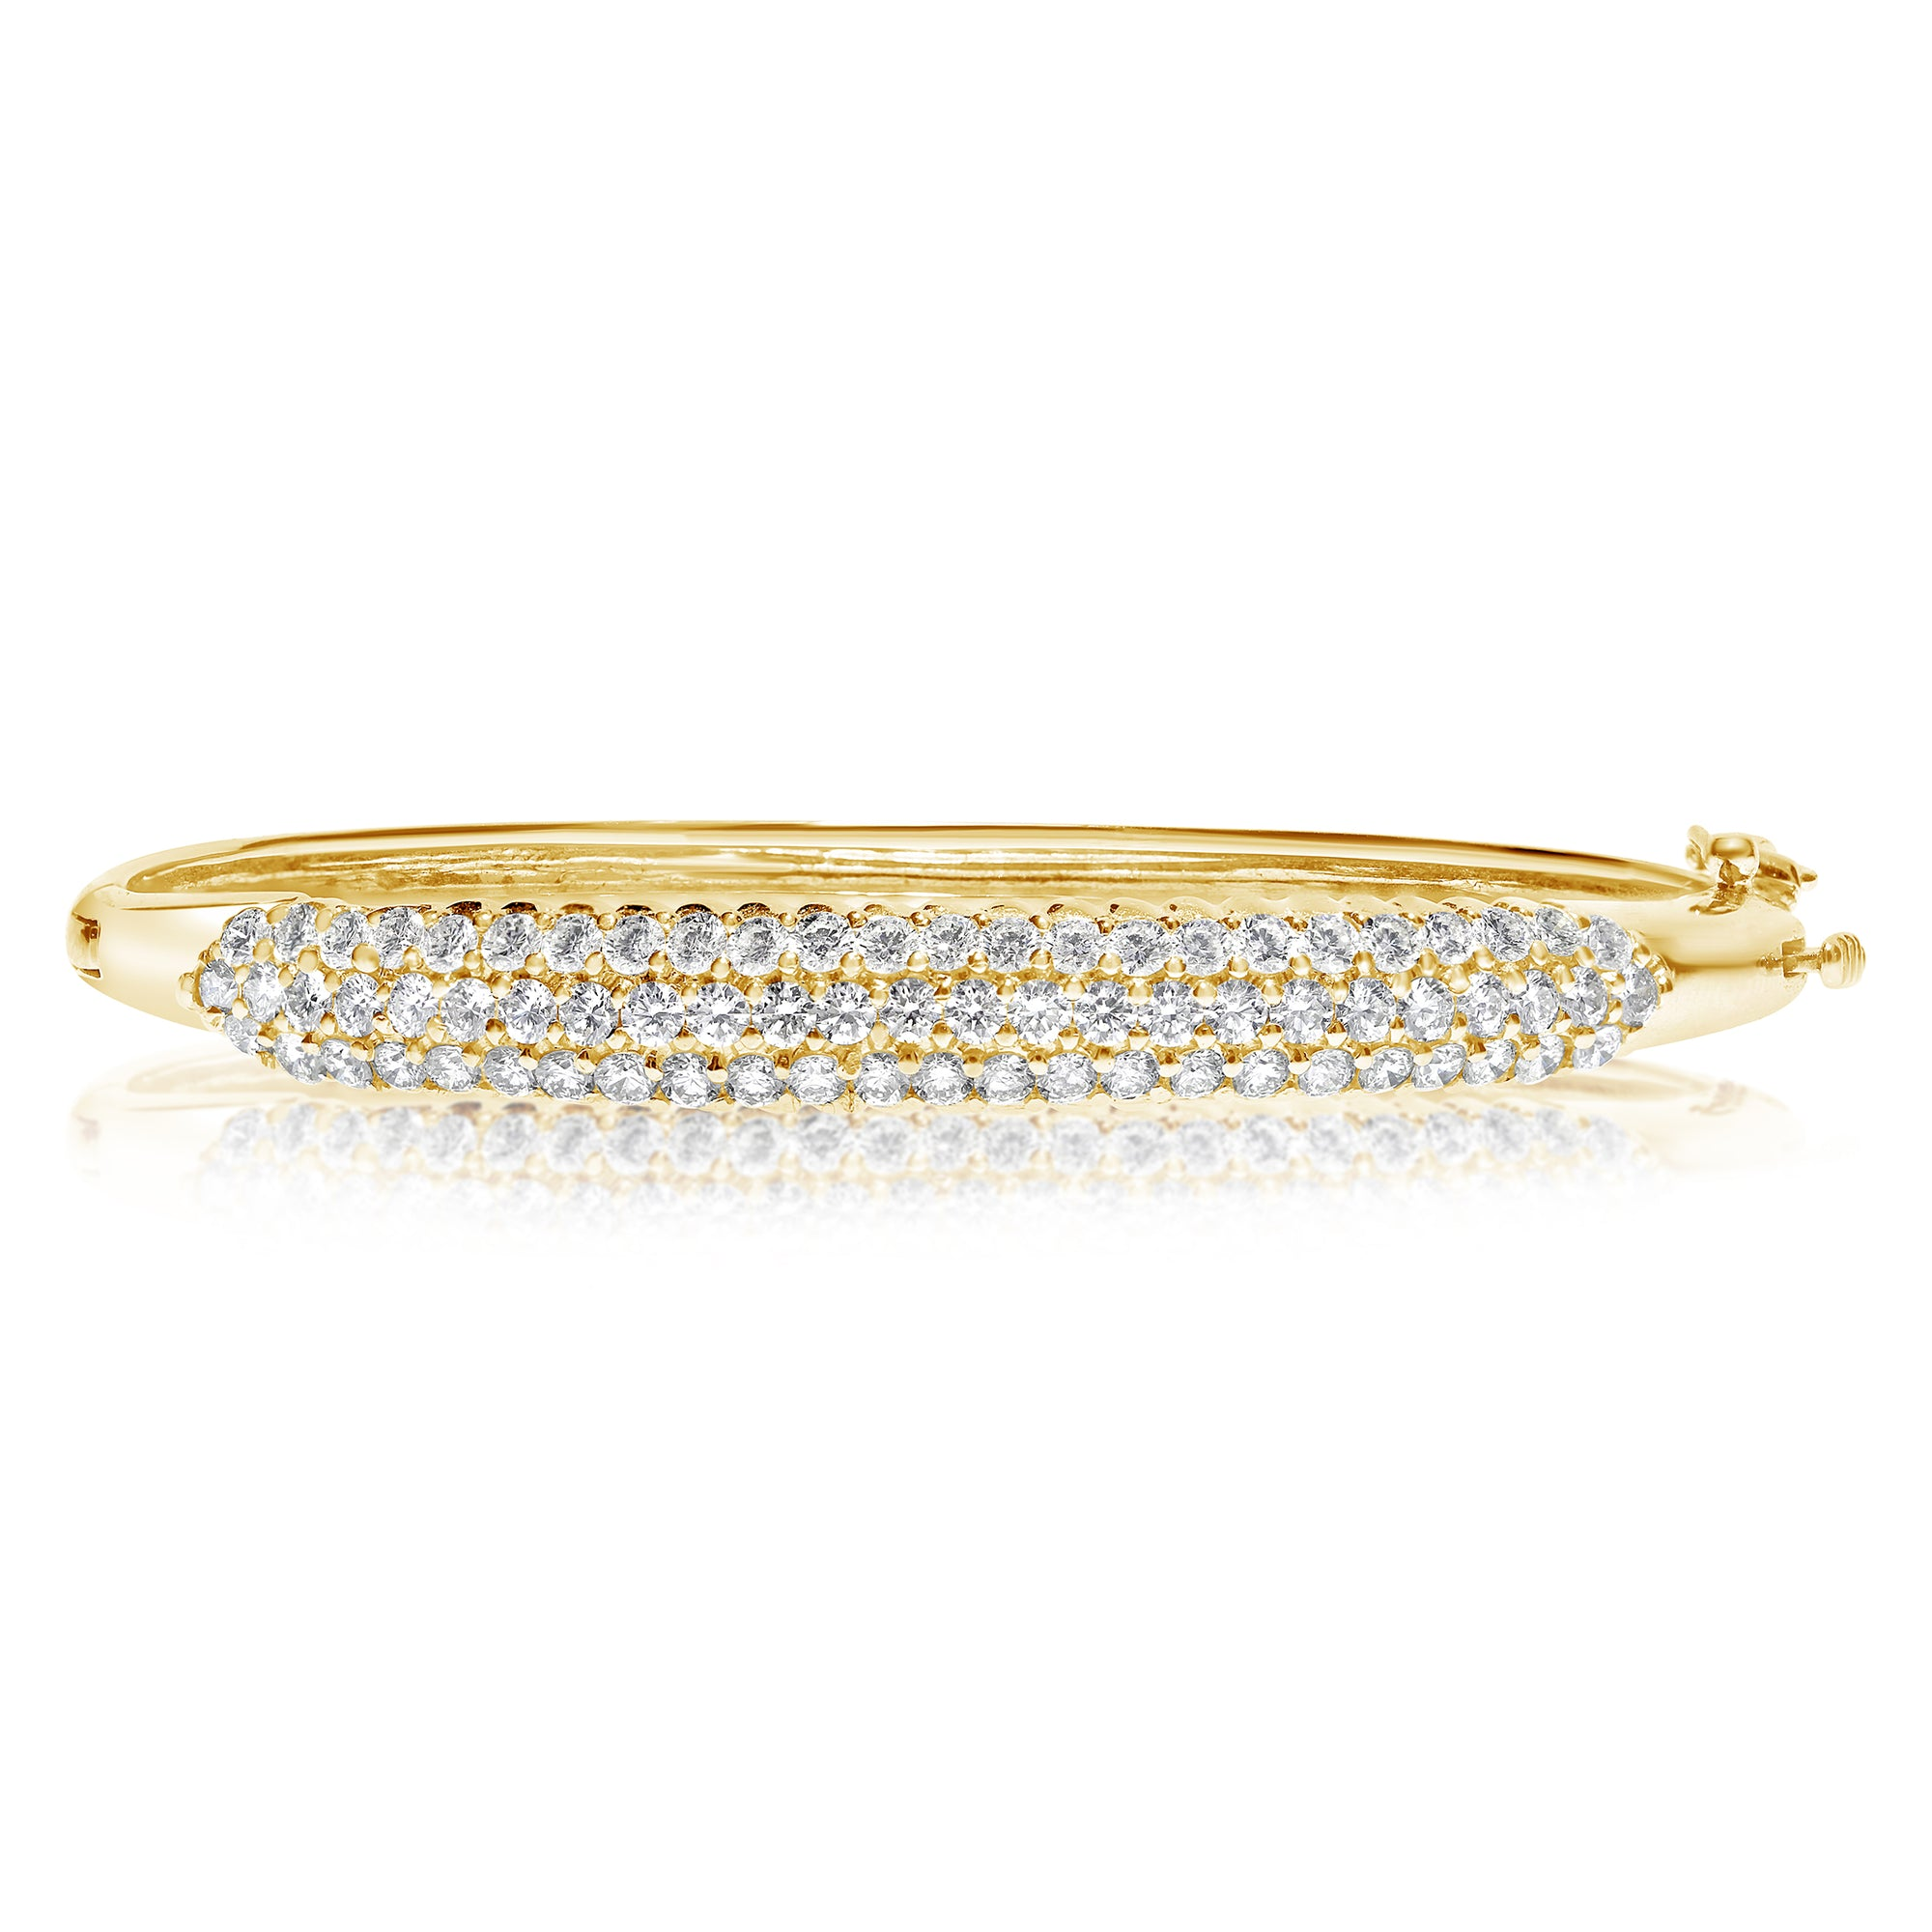 round product jewelry kappy s bangles bracelet pave gold diamond bangle white